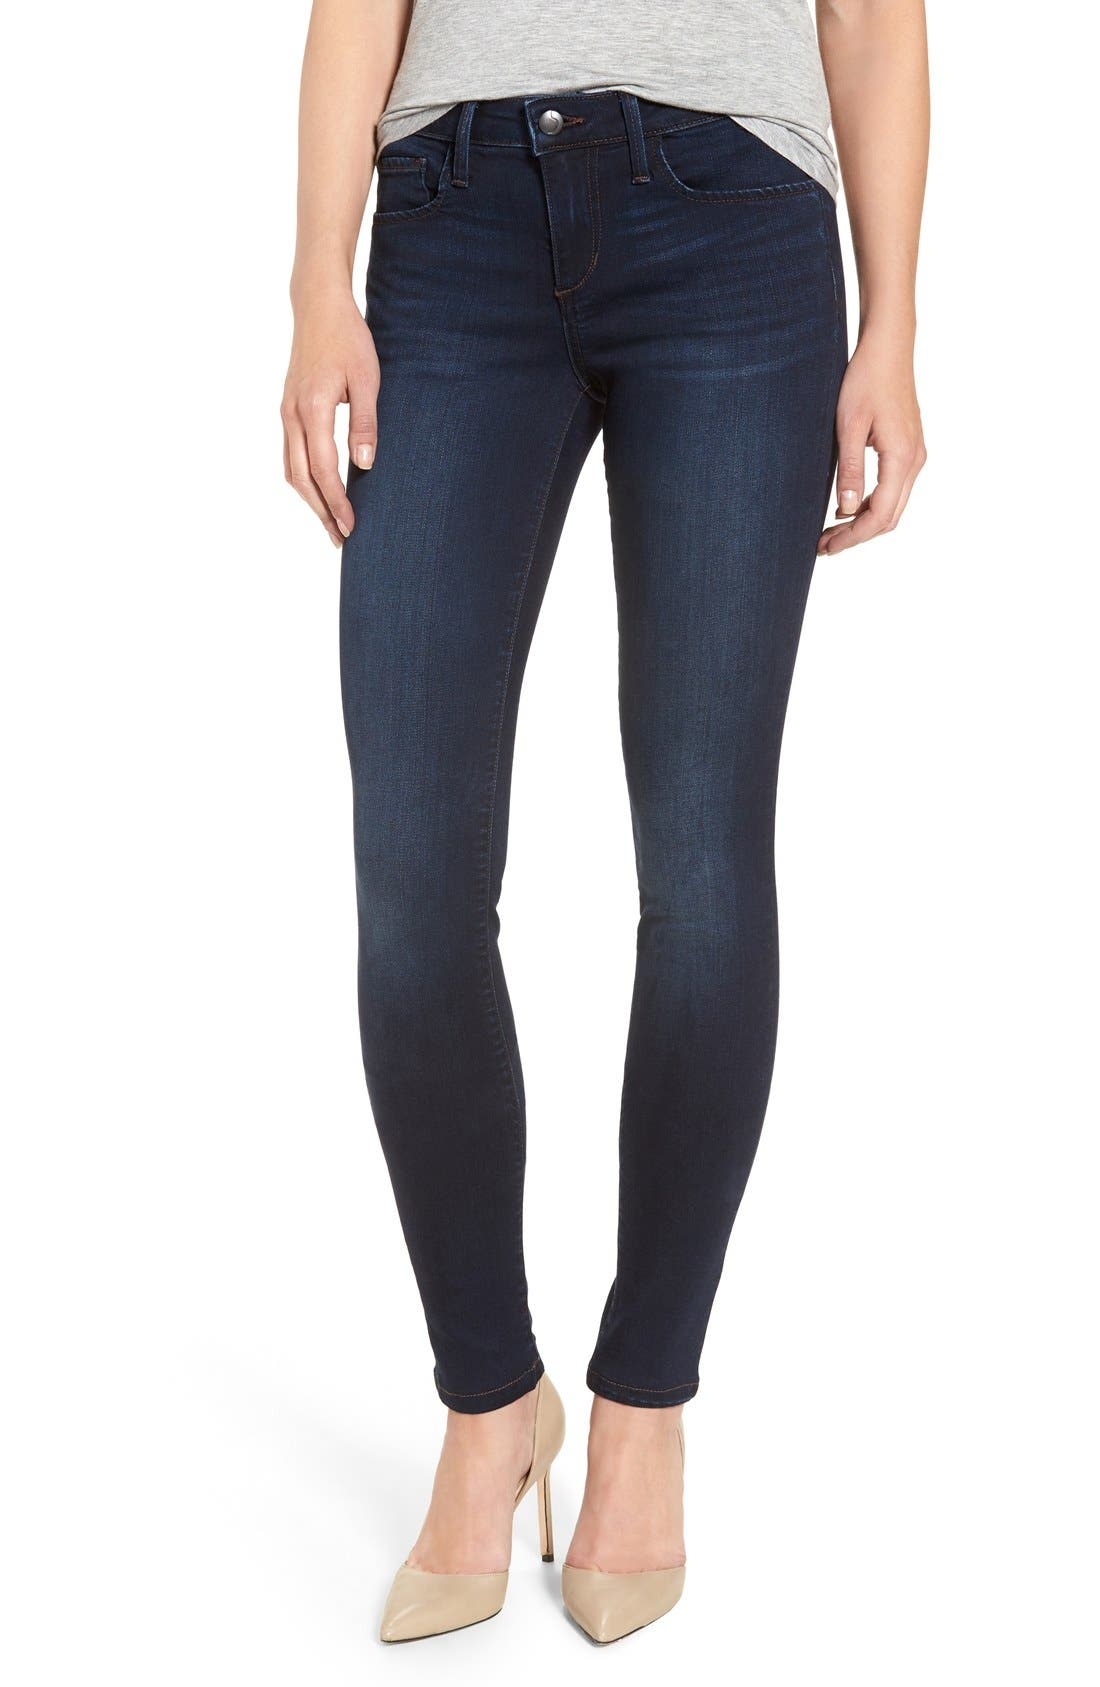 'Flawless - Twiggy' Skinny Jeans,                             Main thumbnail 1, color,                             Selma